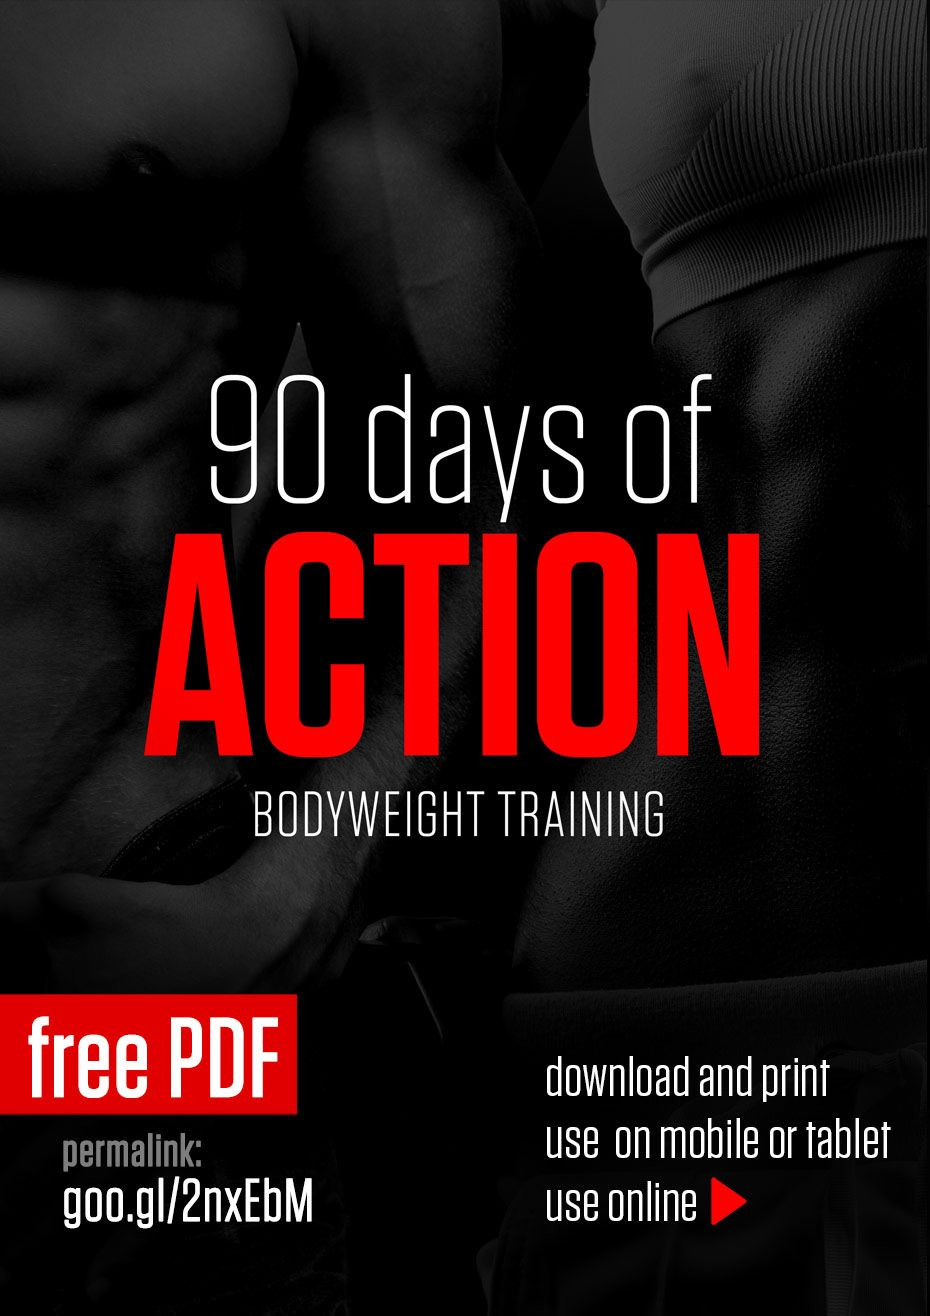 90 Days Of Action Workout Programs Fitness Diet Workout Training Programs